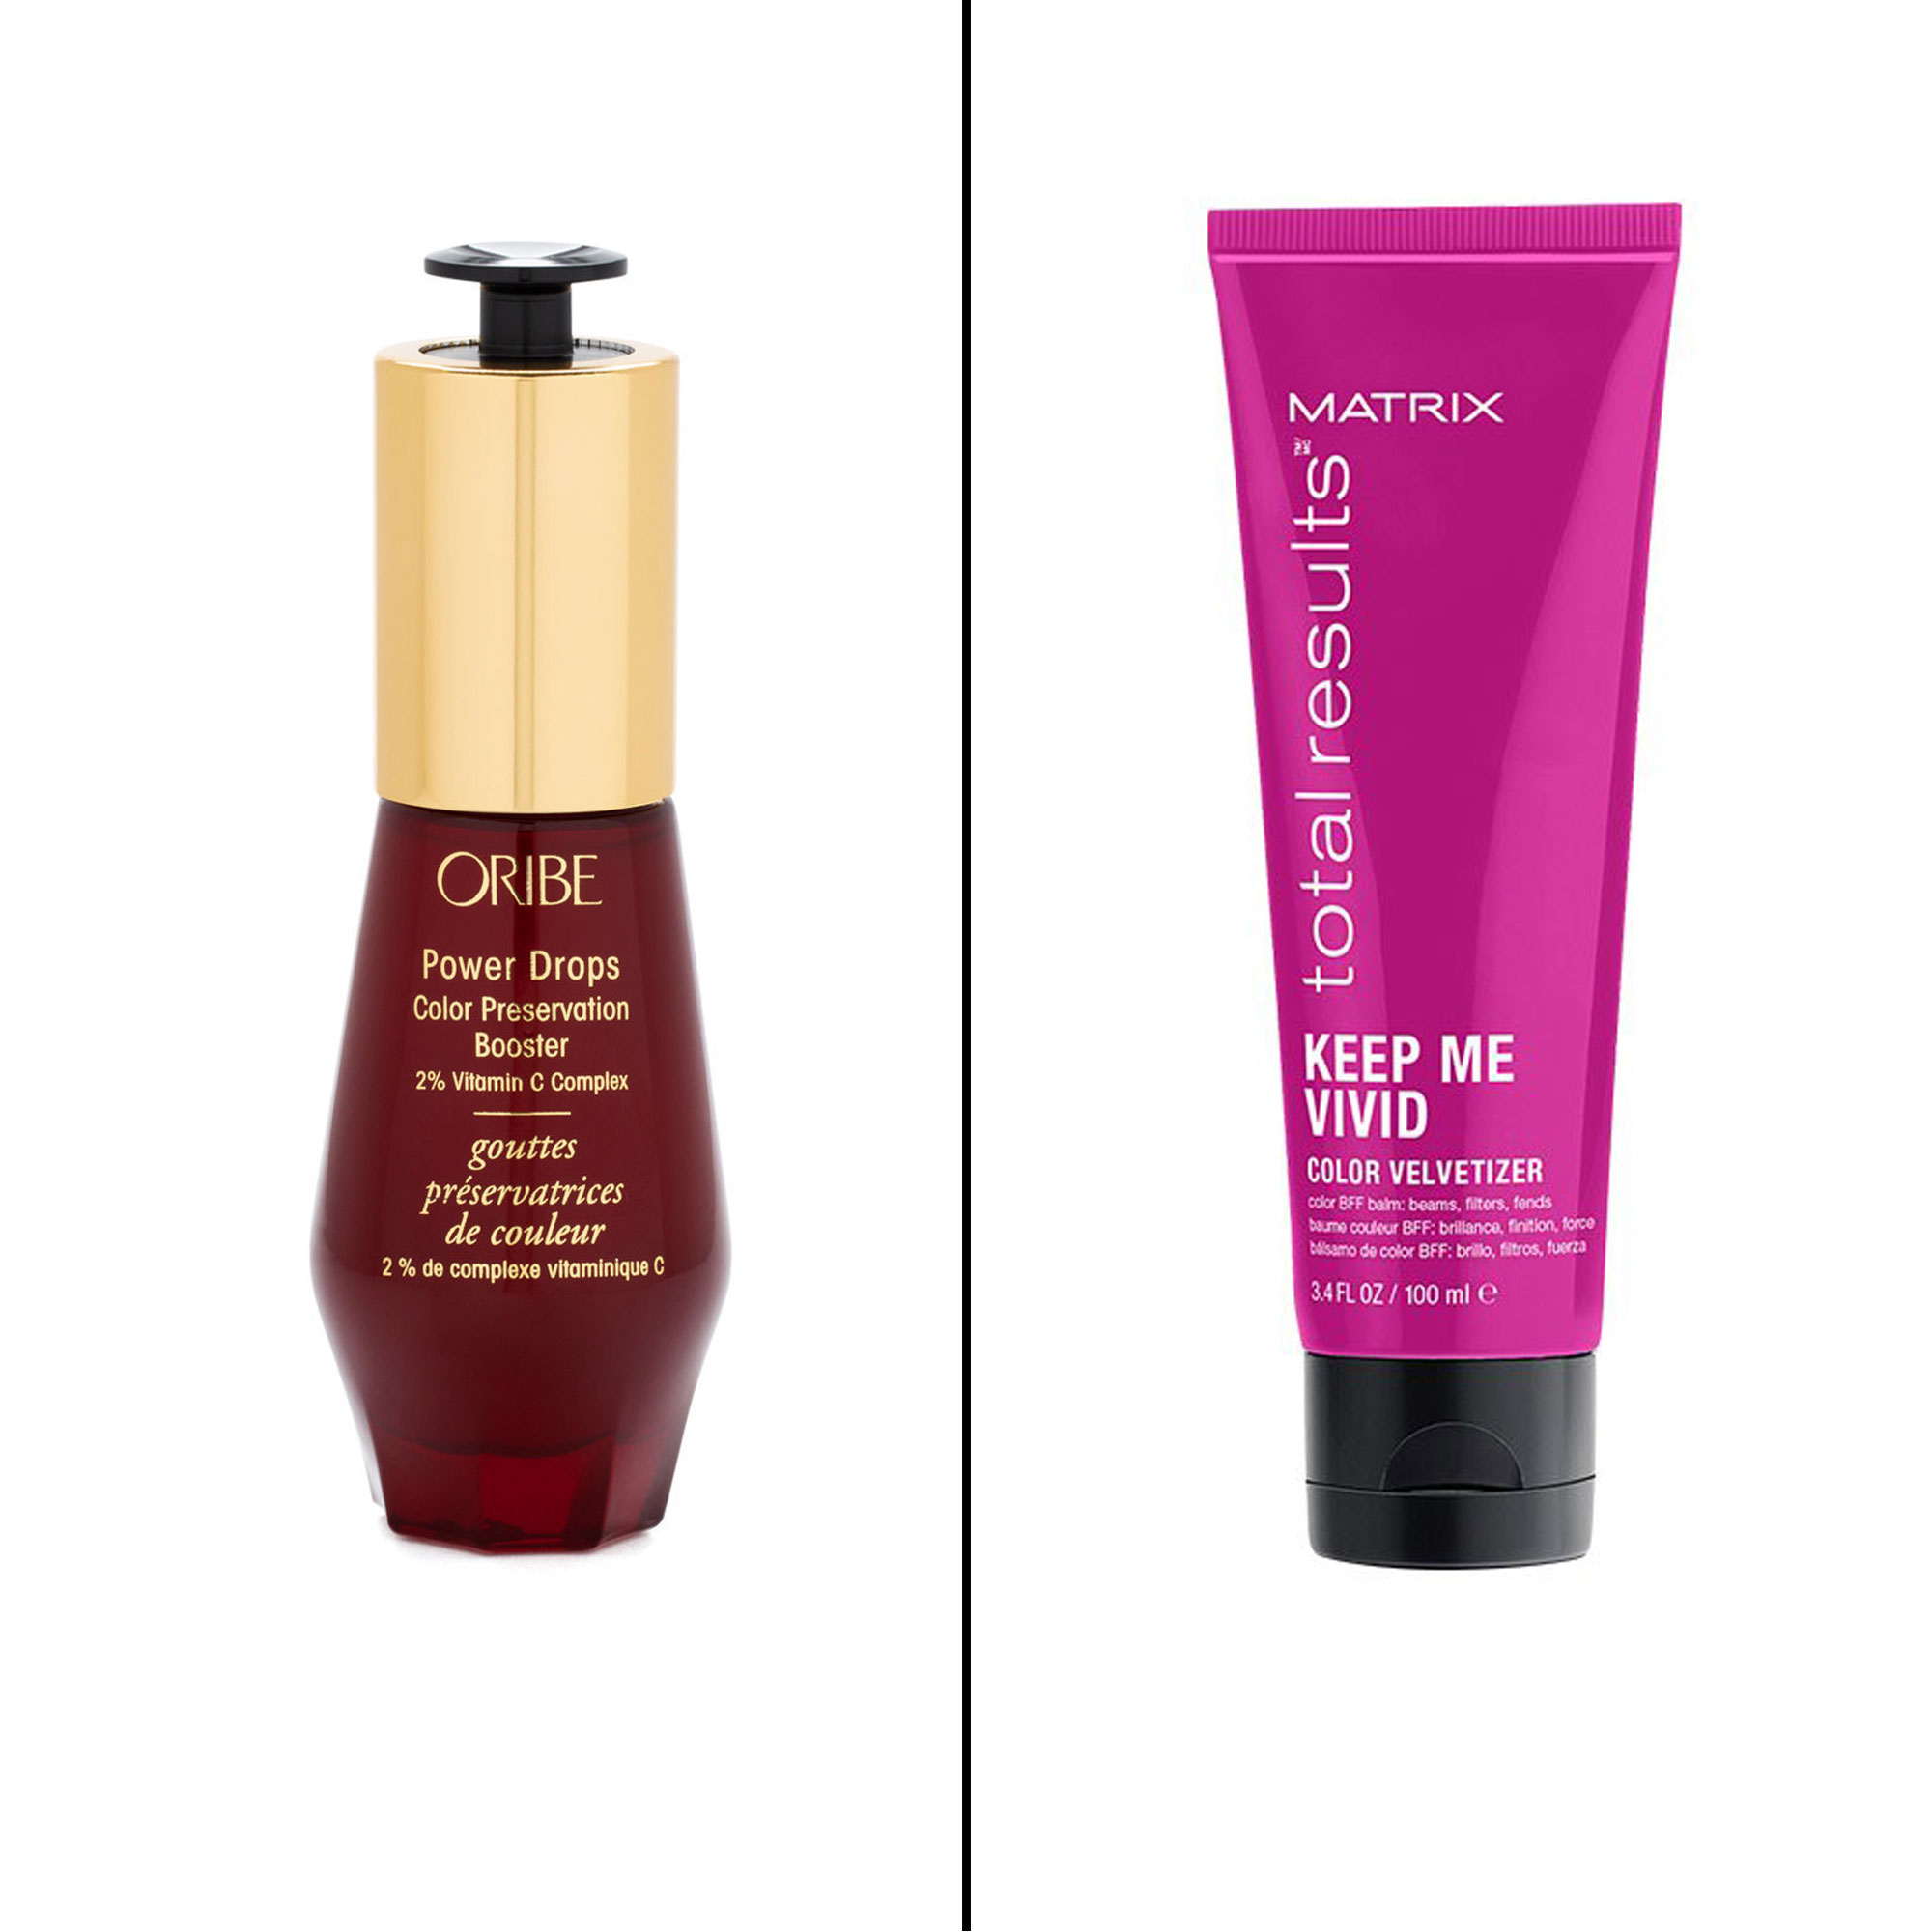 Splurge vs. Save: Salon-Worthy Hair Treatments For Every Type of Need - Splurge: Oribe Power Drops Color Preservation Booster A small drop of this concentrated treatment will keep every color shade vibrant and bright thanks to vitamin C, bioflavonoids and quinoa protein. $58, oribe.com Save: Matrix Total Results Keep Me Vivid Color Velvetizer This cream protects against UV and heat to keep fresh color, well, fresh!